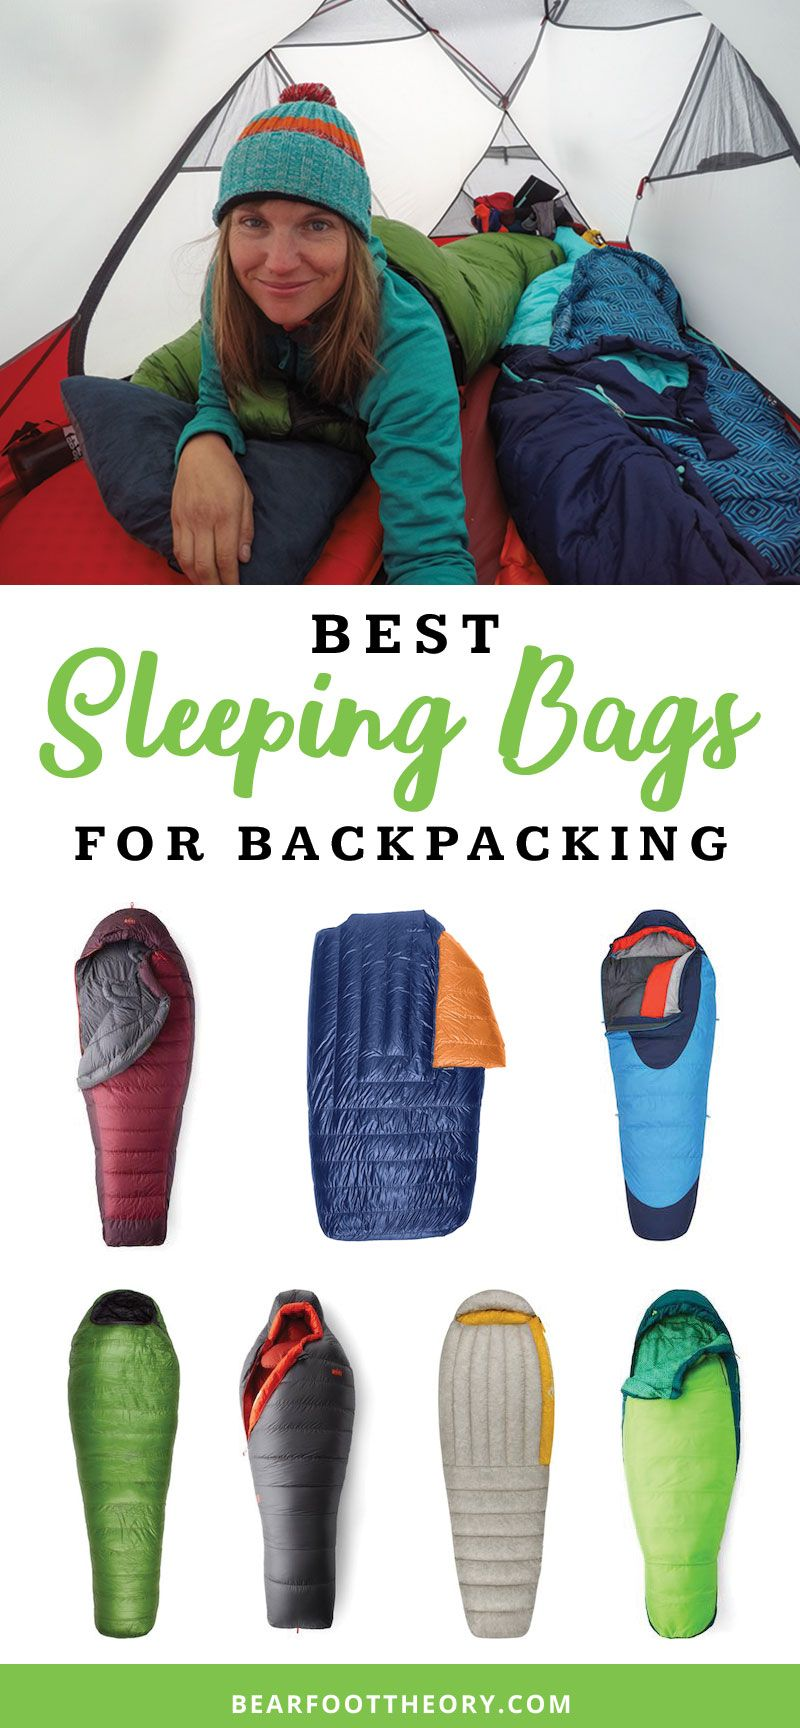 Photo of Best Sleeping Bags for Backpacking in 2019